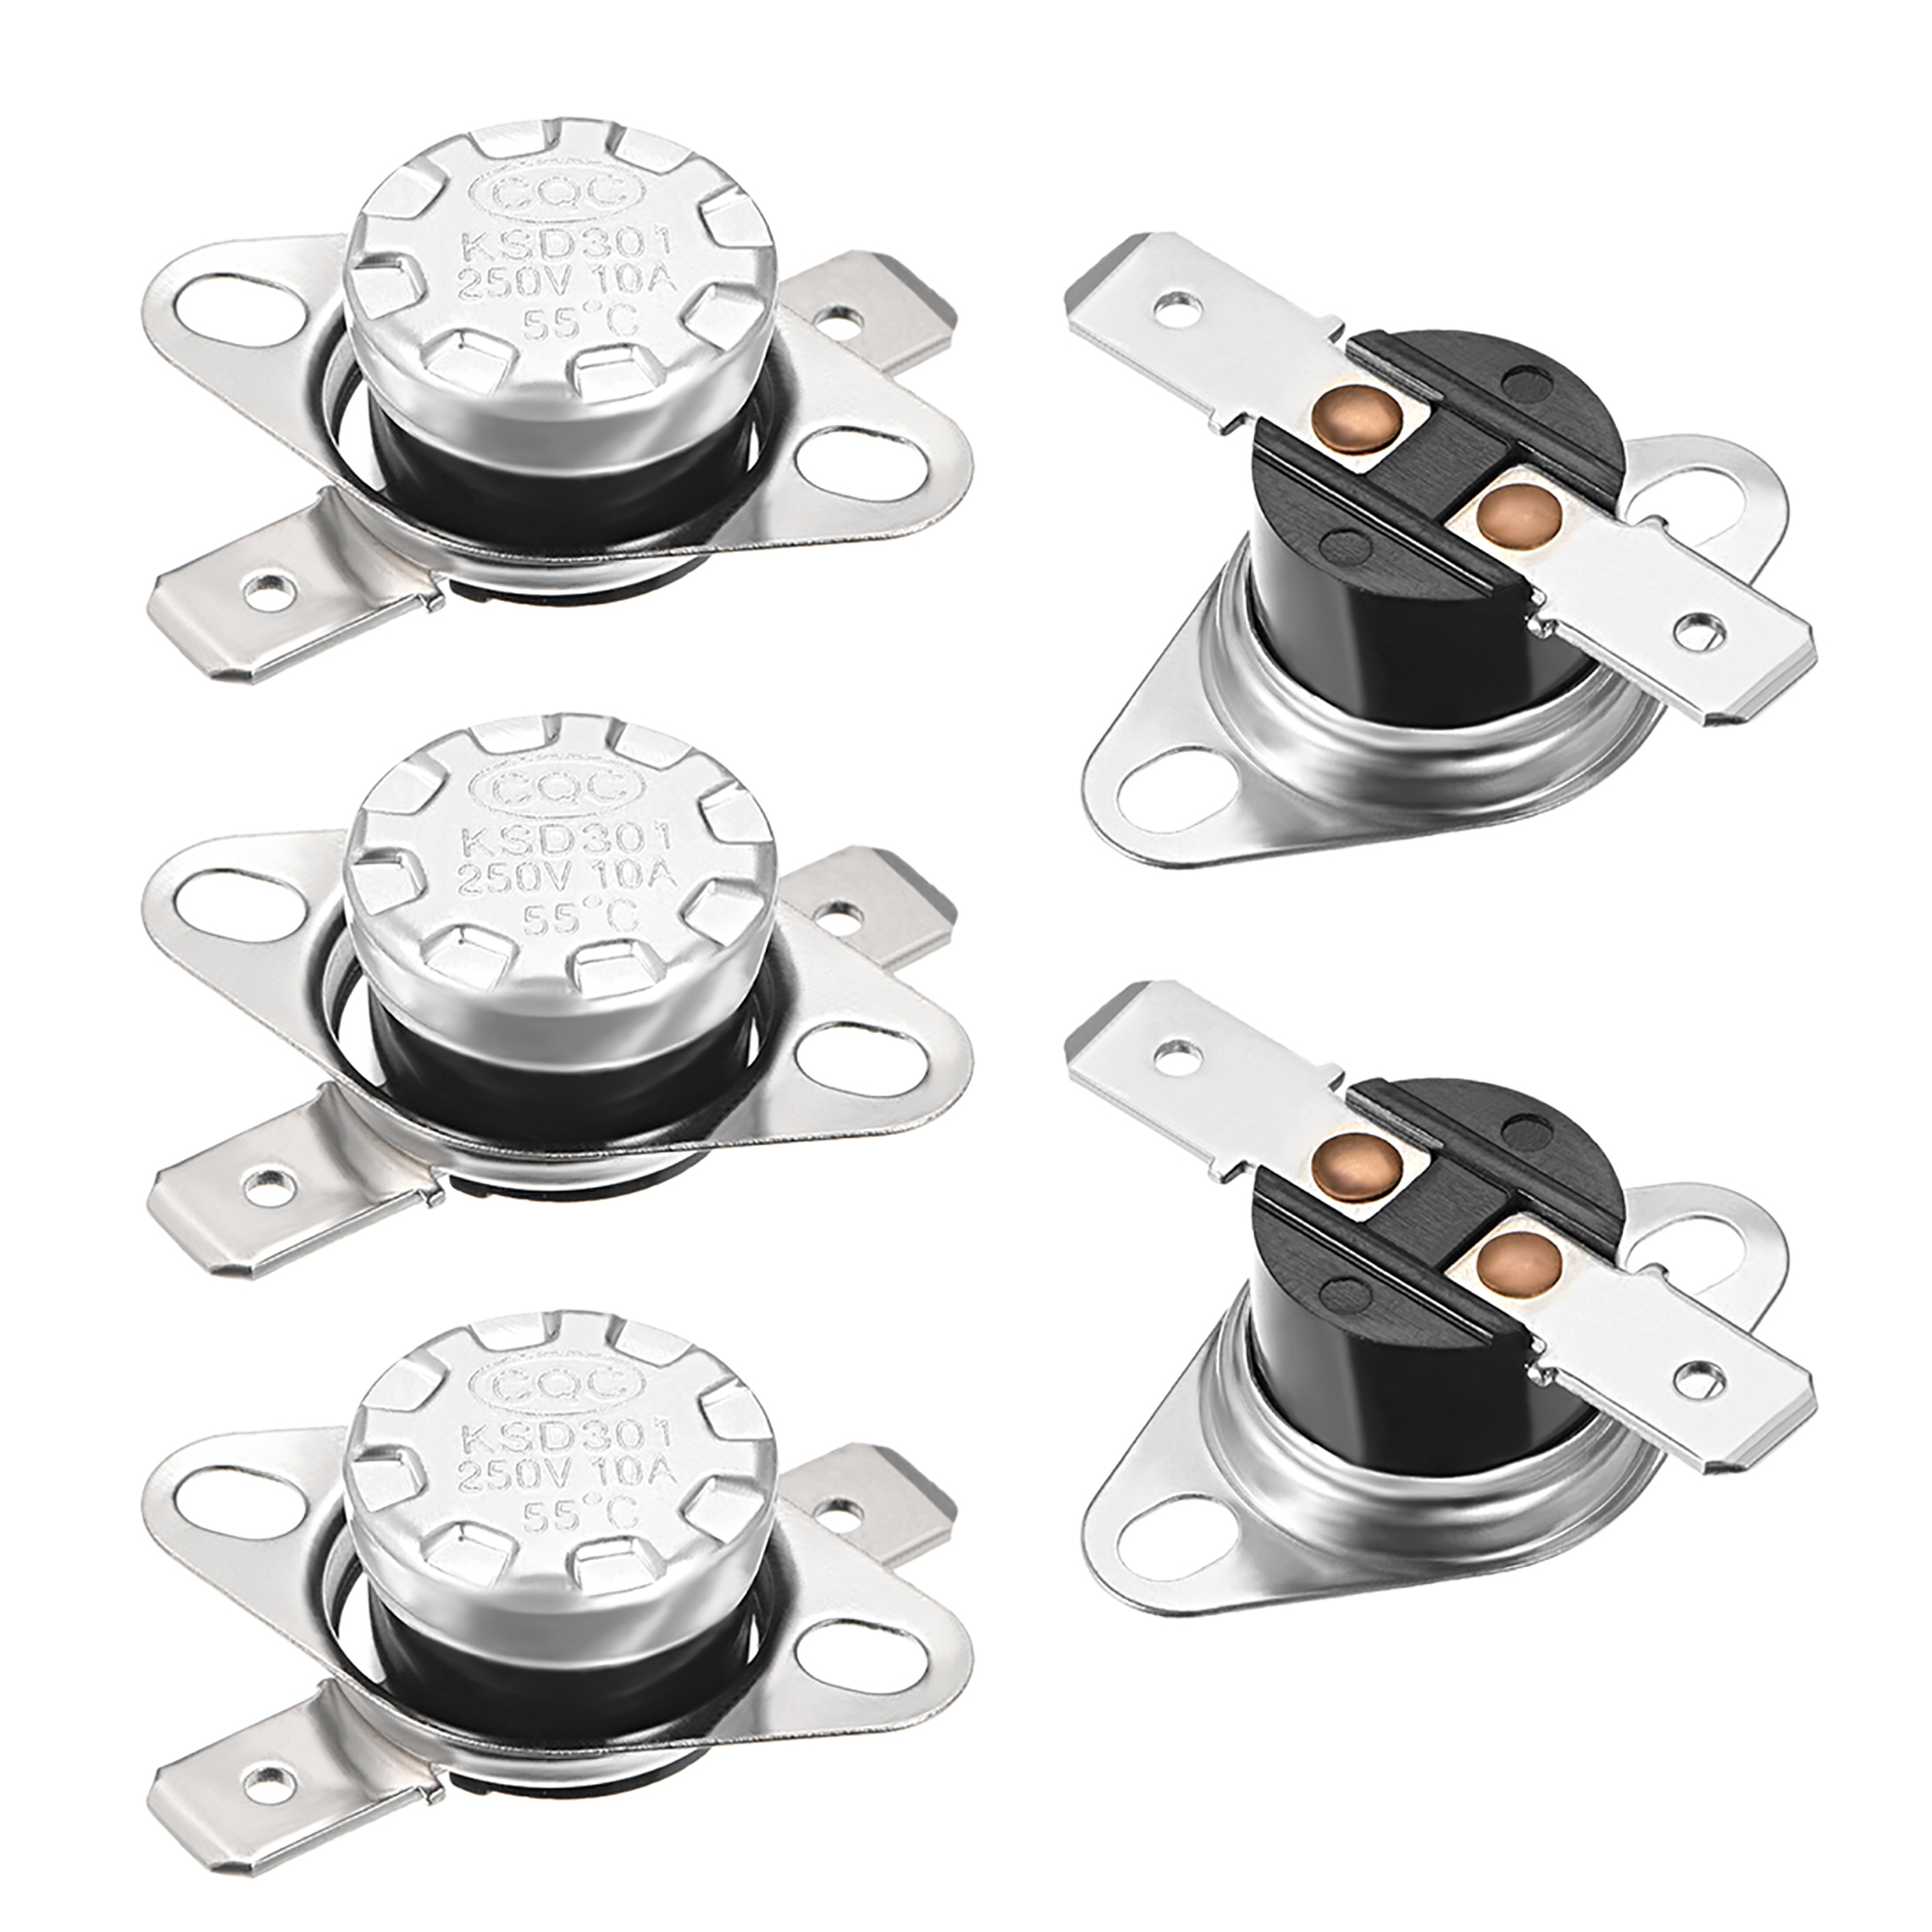 Temperature Control Switch, Thermostat 55°C 10A N.C 6.3mm Pin 5pcs